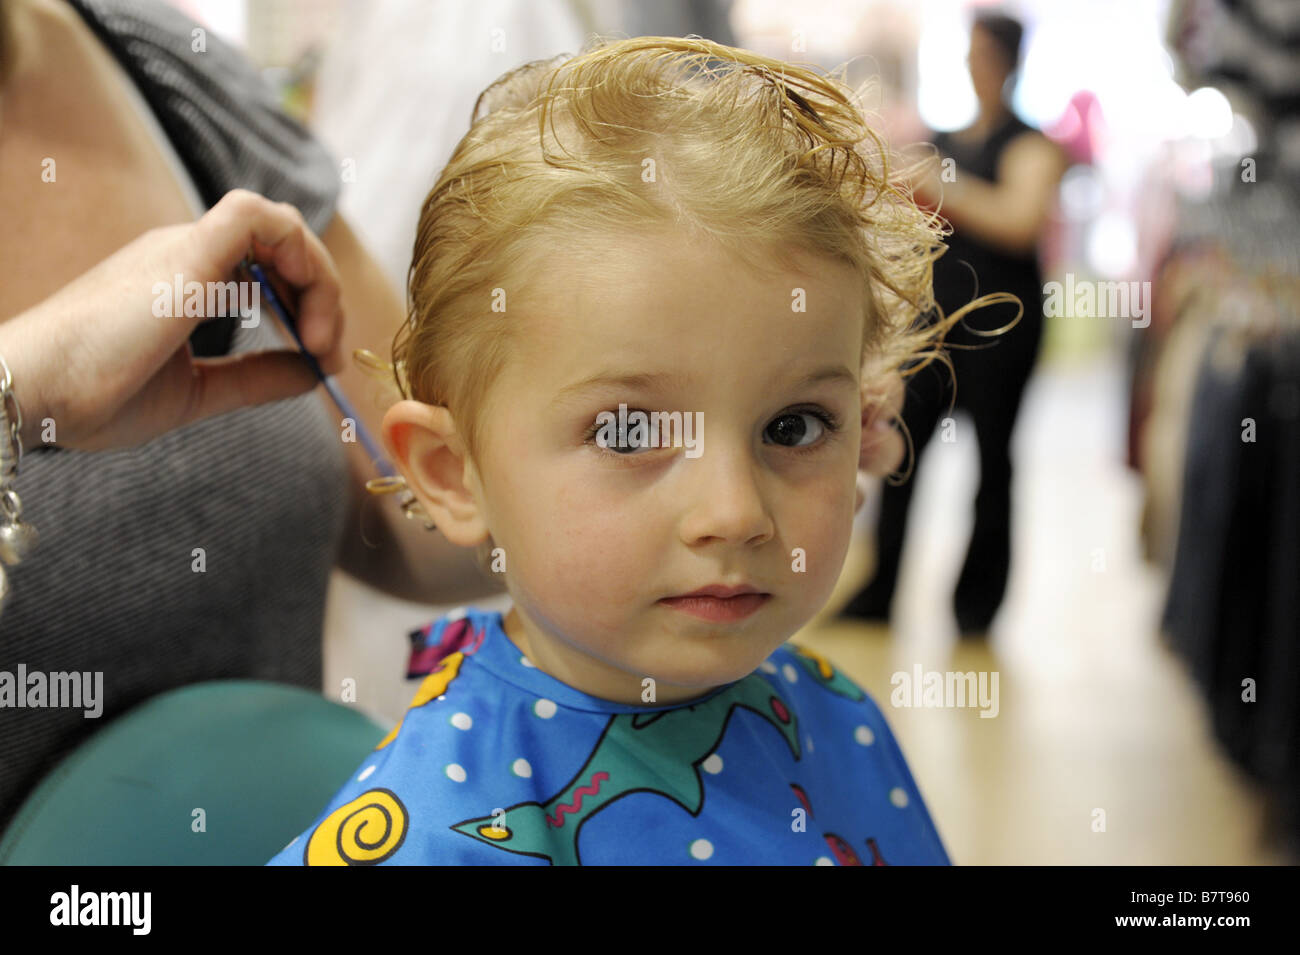 Young Girl Getting A Haircut Stock Photo 22047032 Alamy